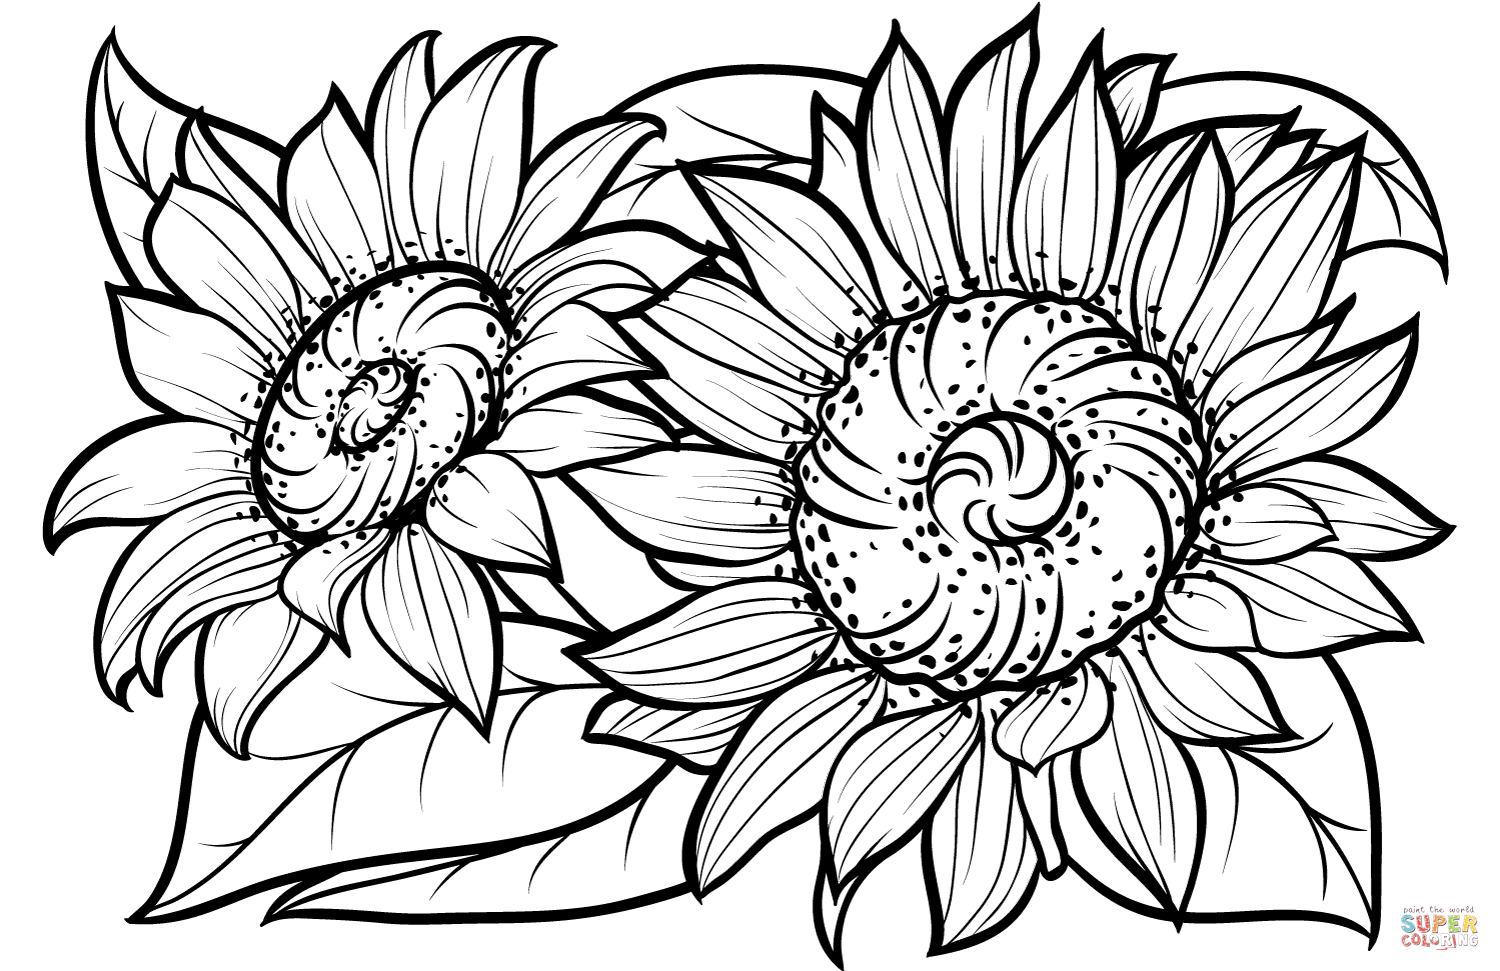 sunflower pictures to colour in sunflower coloring page free printable coloring pages colour pictures in sunflower to